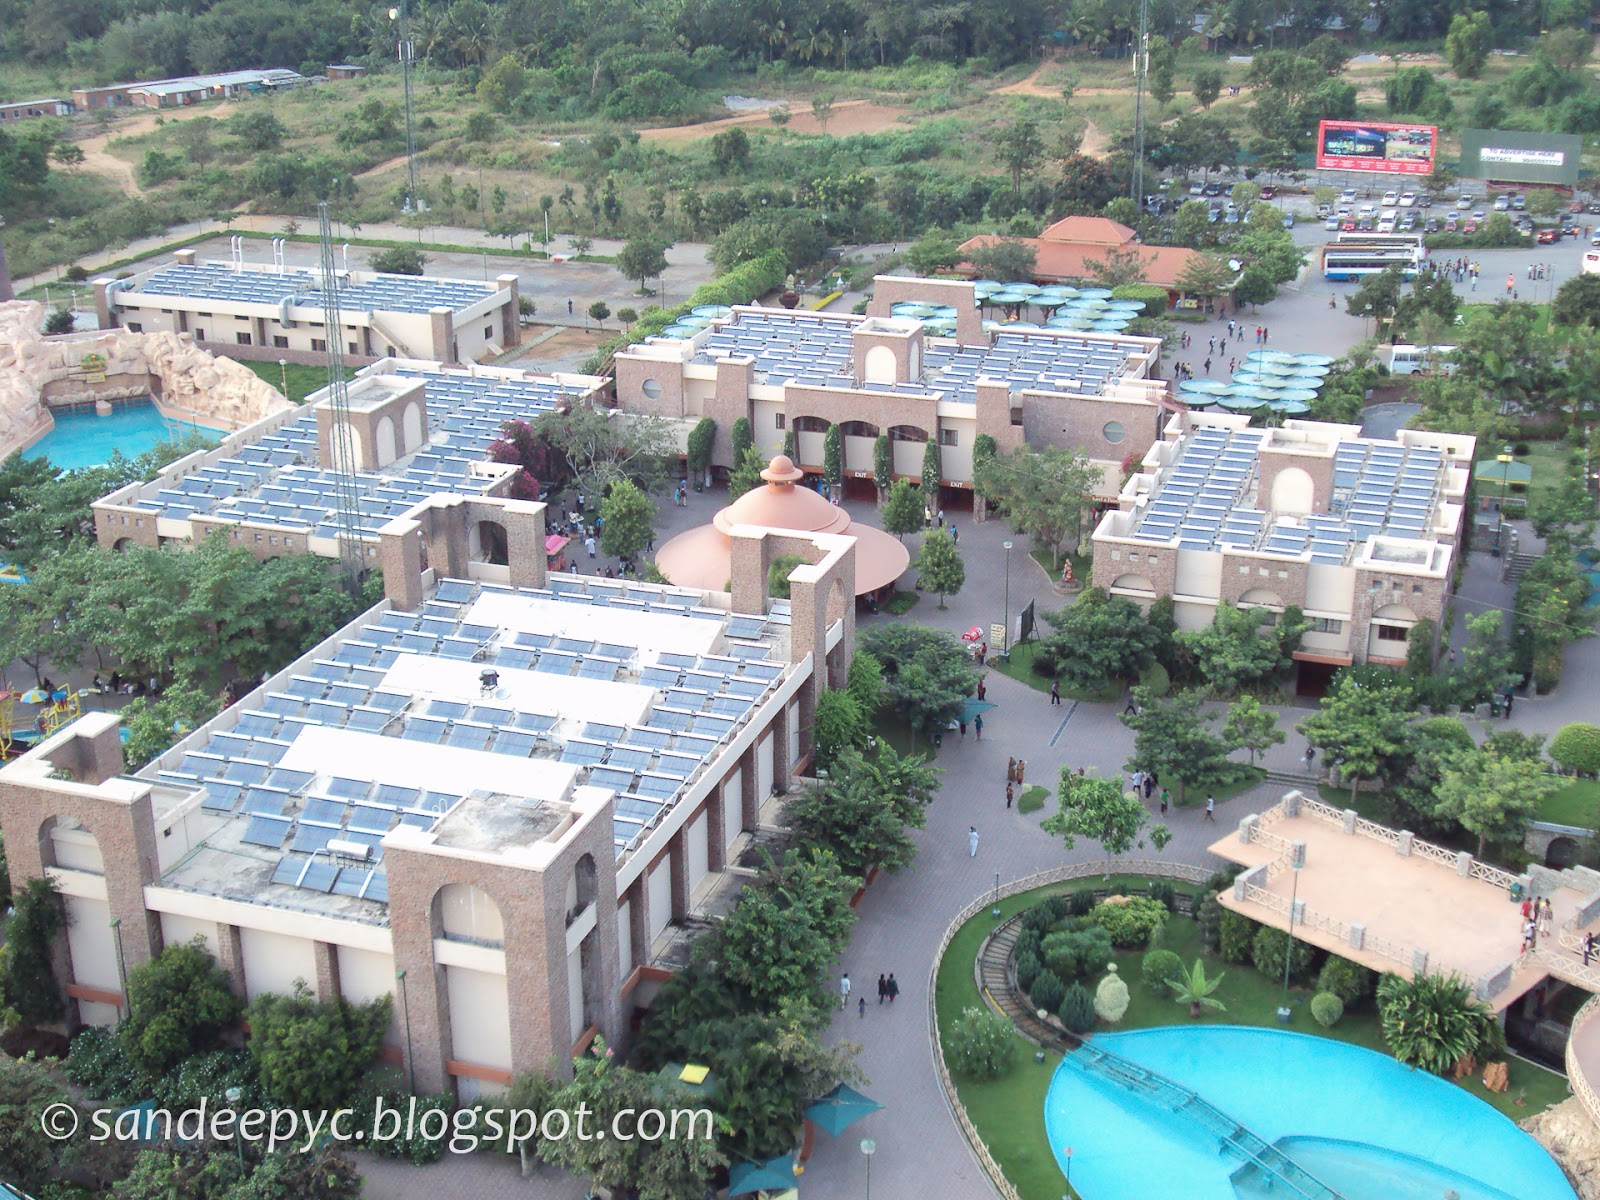 The solar panels on top of the buildings at WonderLa